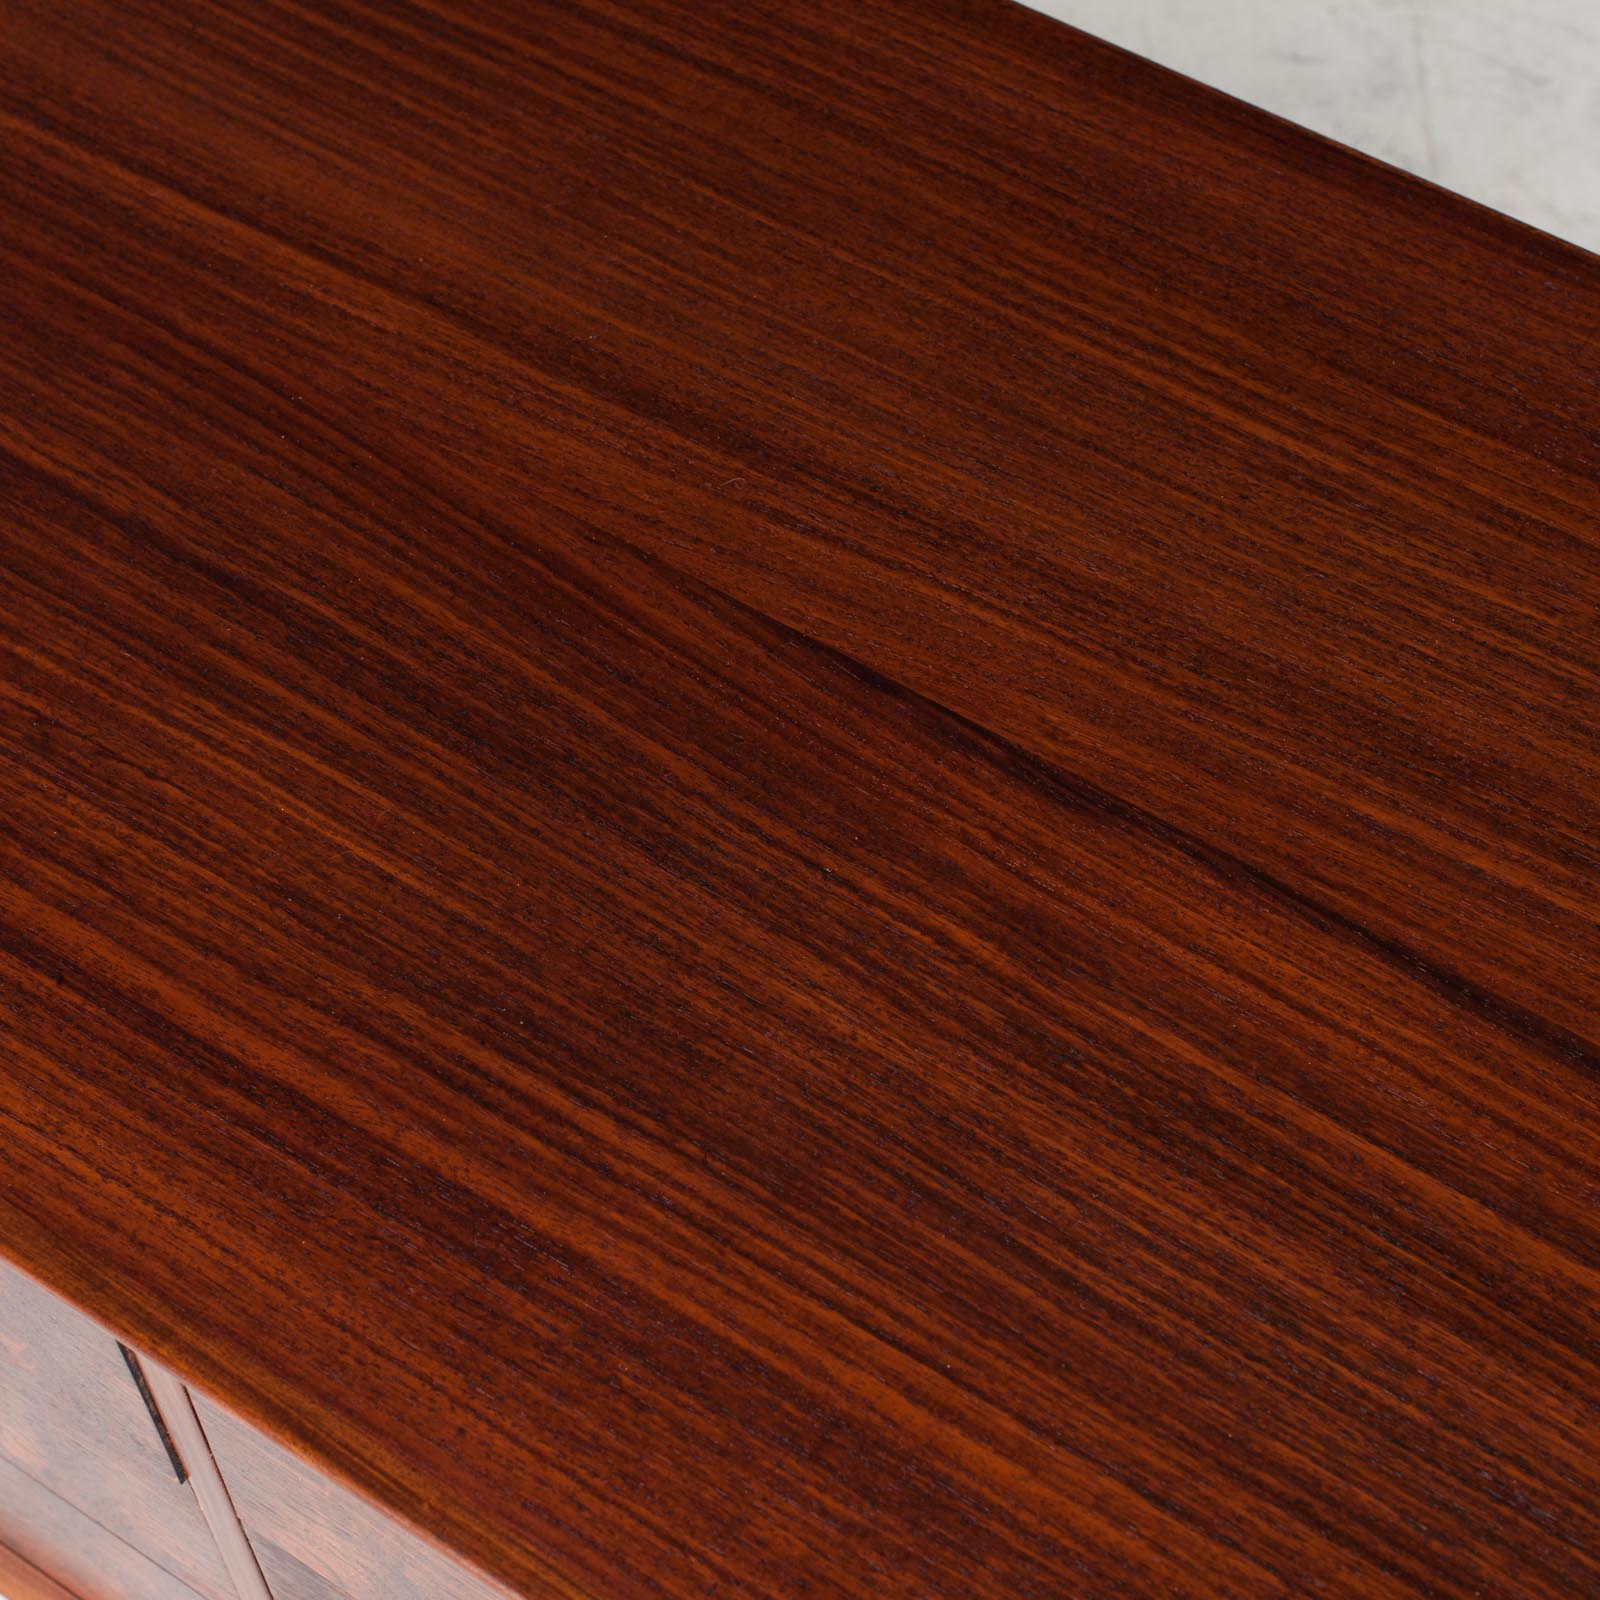 Low Chest Of Drawers In Rosewood 011